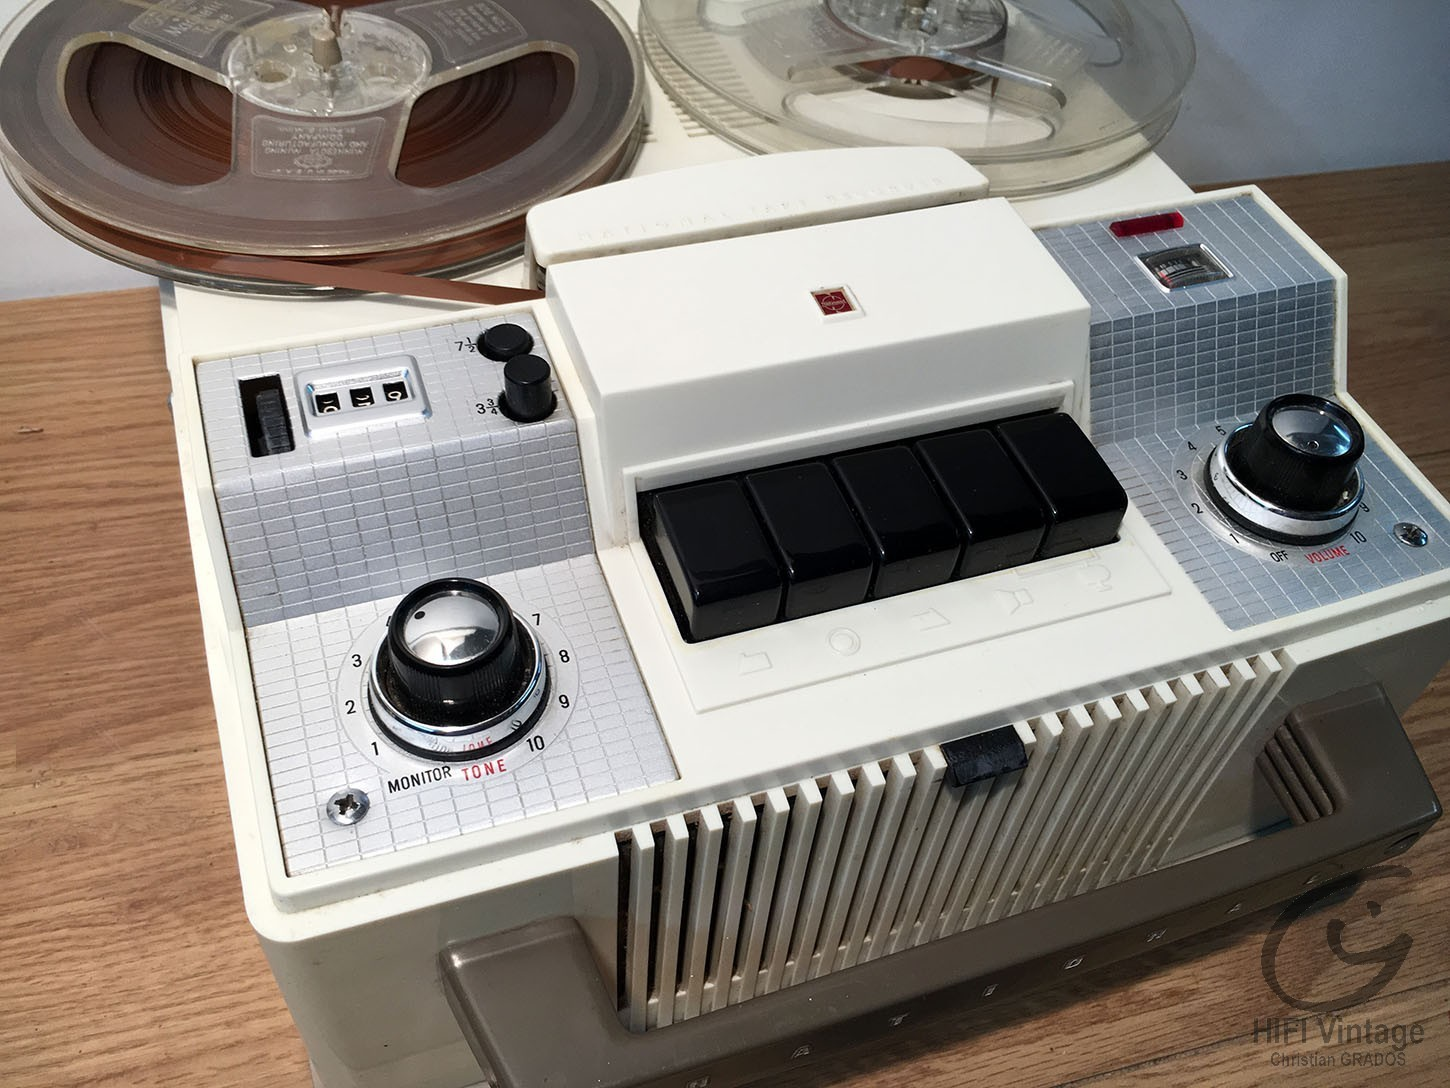 NATIONAL Tape recorder 1960